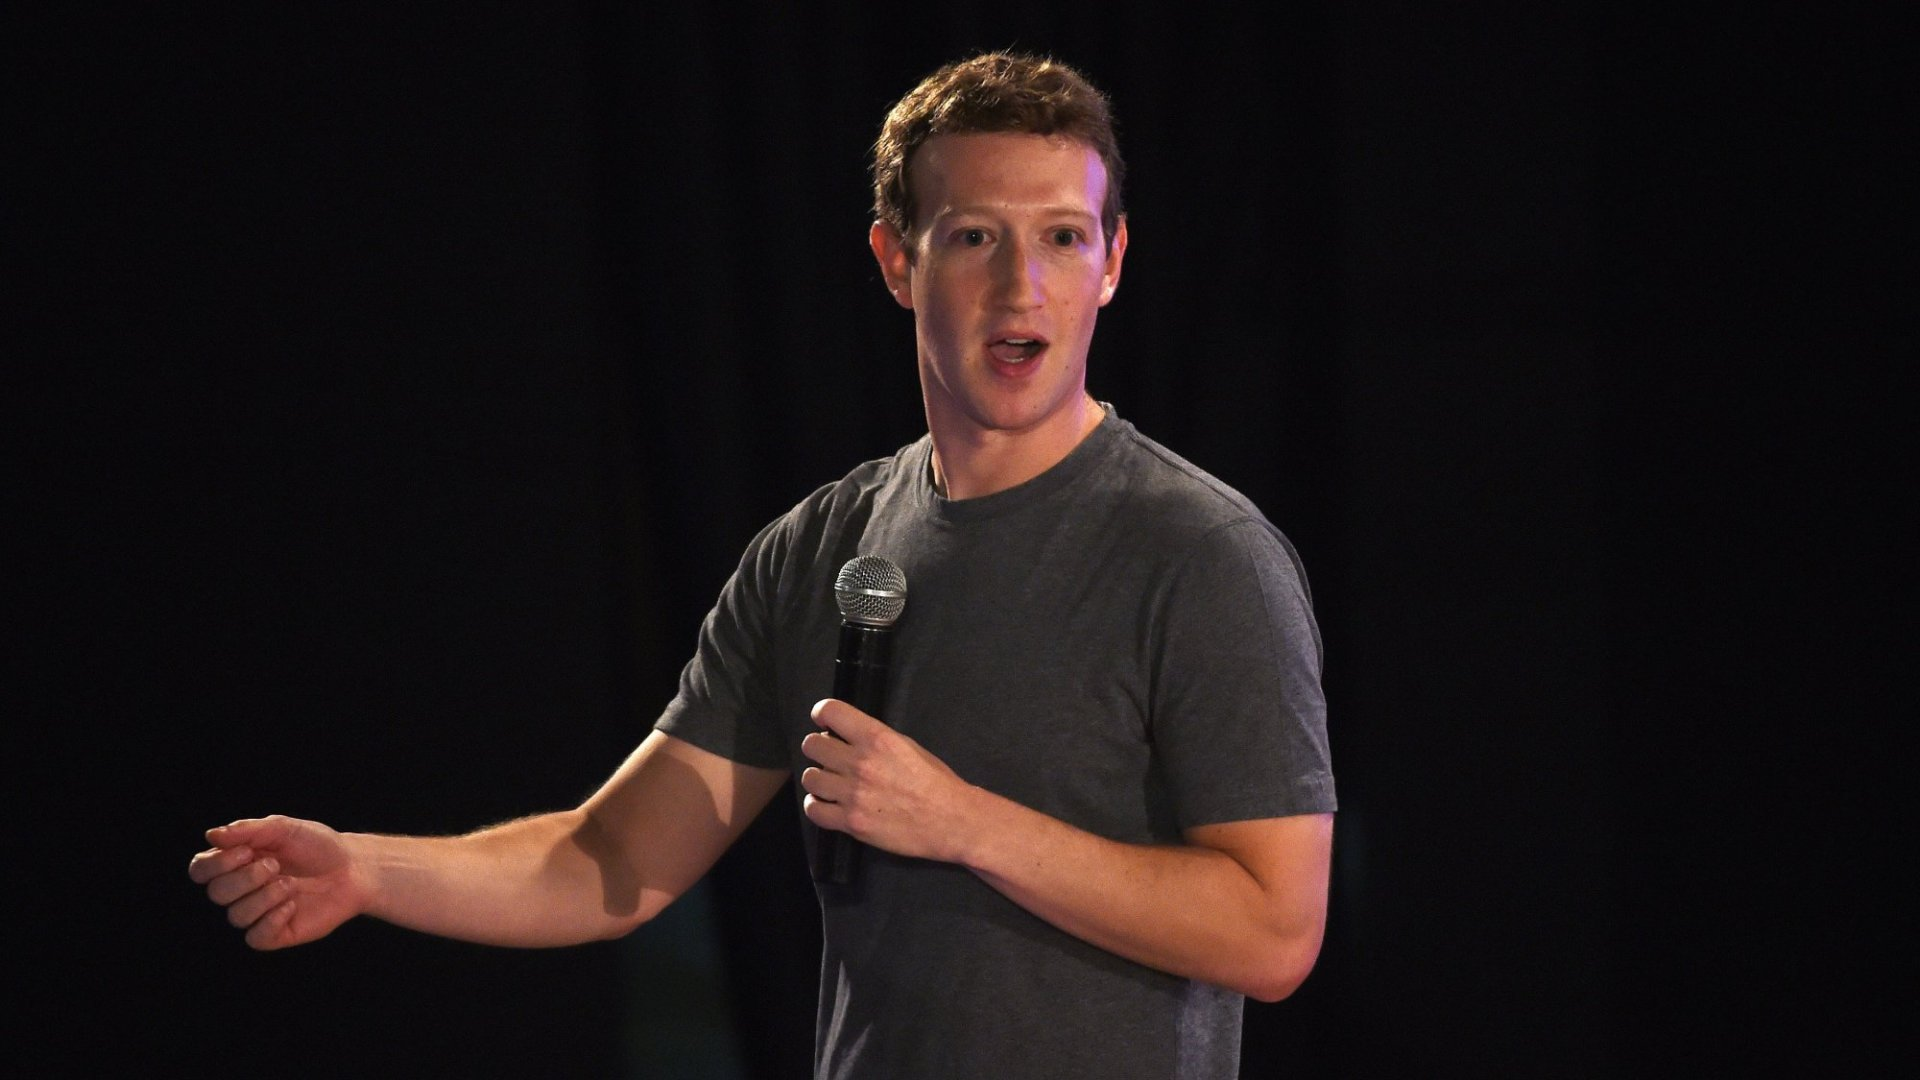 Mark Zuckerberg's Top 4 Productivity Secrets